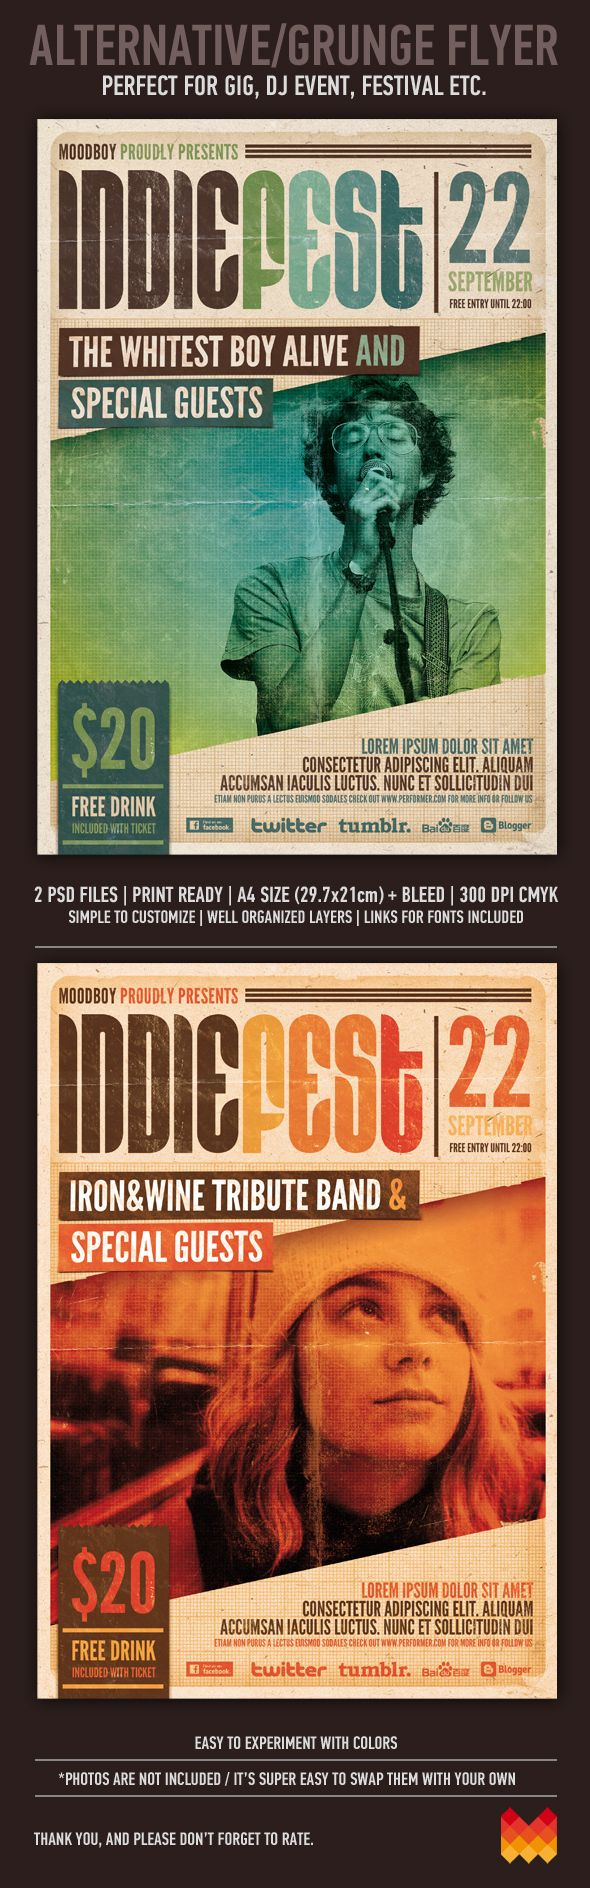 Music Festival rebrand inspiration    Indie Fest Poster PSD (Hi-Res) by moodboy , via Behance